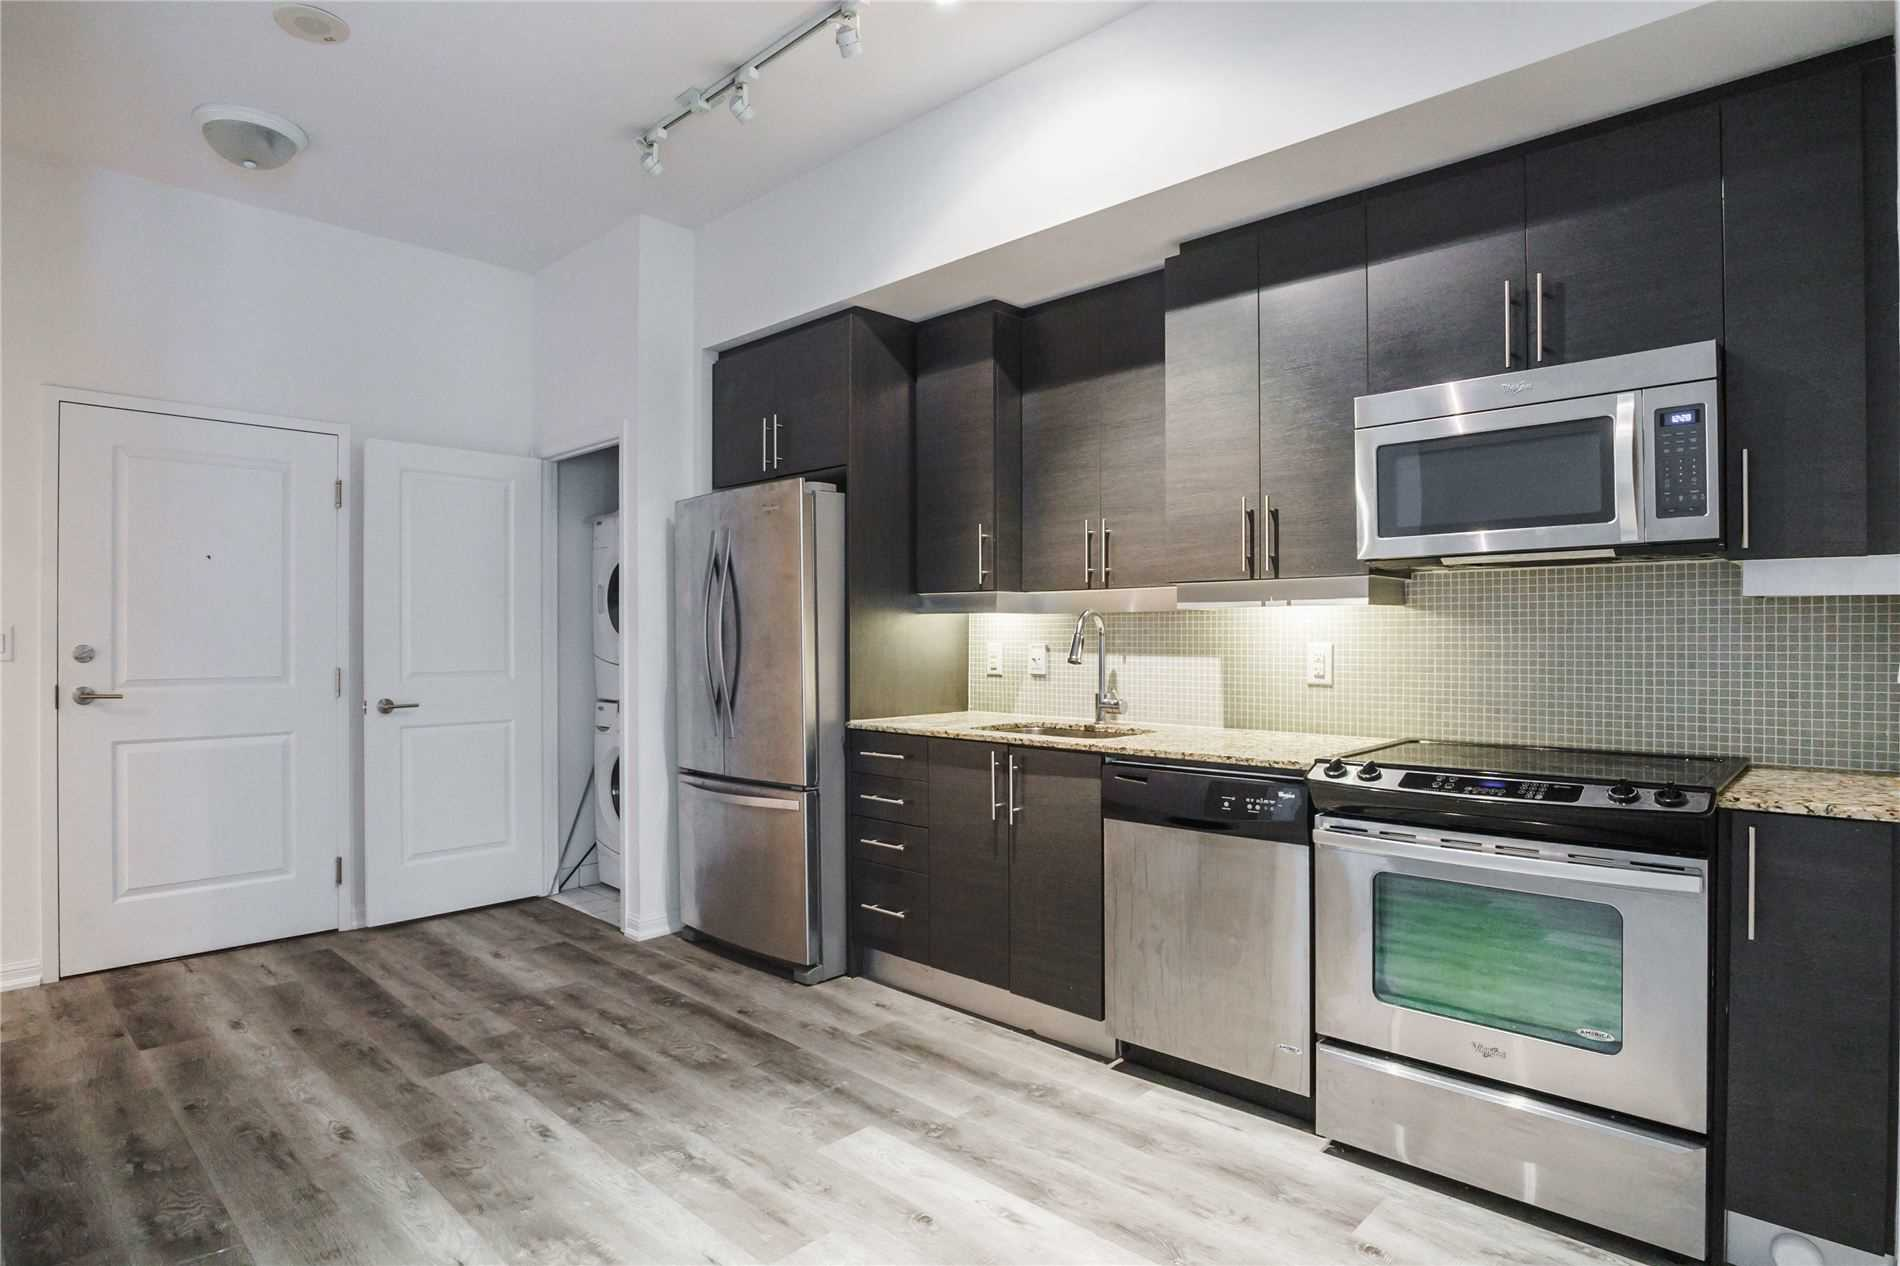 For Rent: 134 - 38 Grand Magazine Street, Toronto, ON   2 Bed, 1 Bath Condo for $2650.00. See 13 photos!